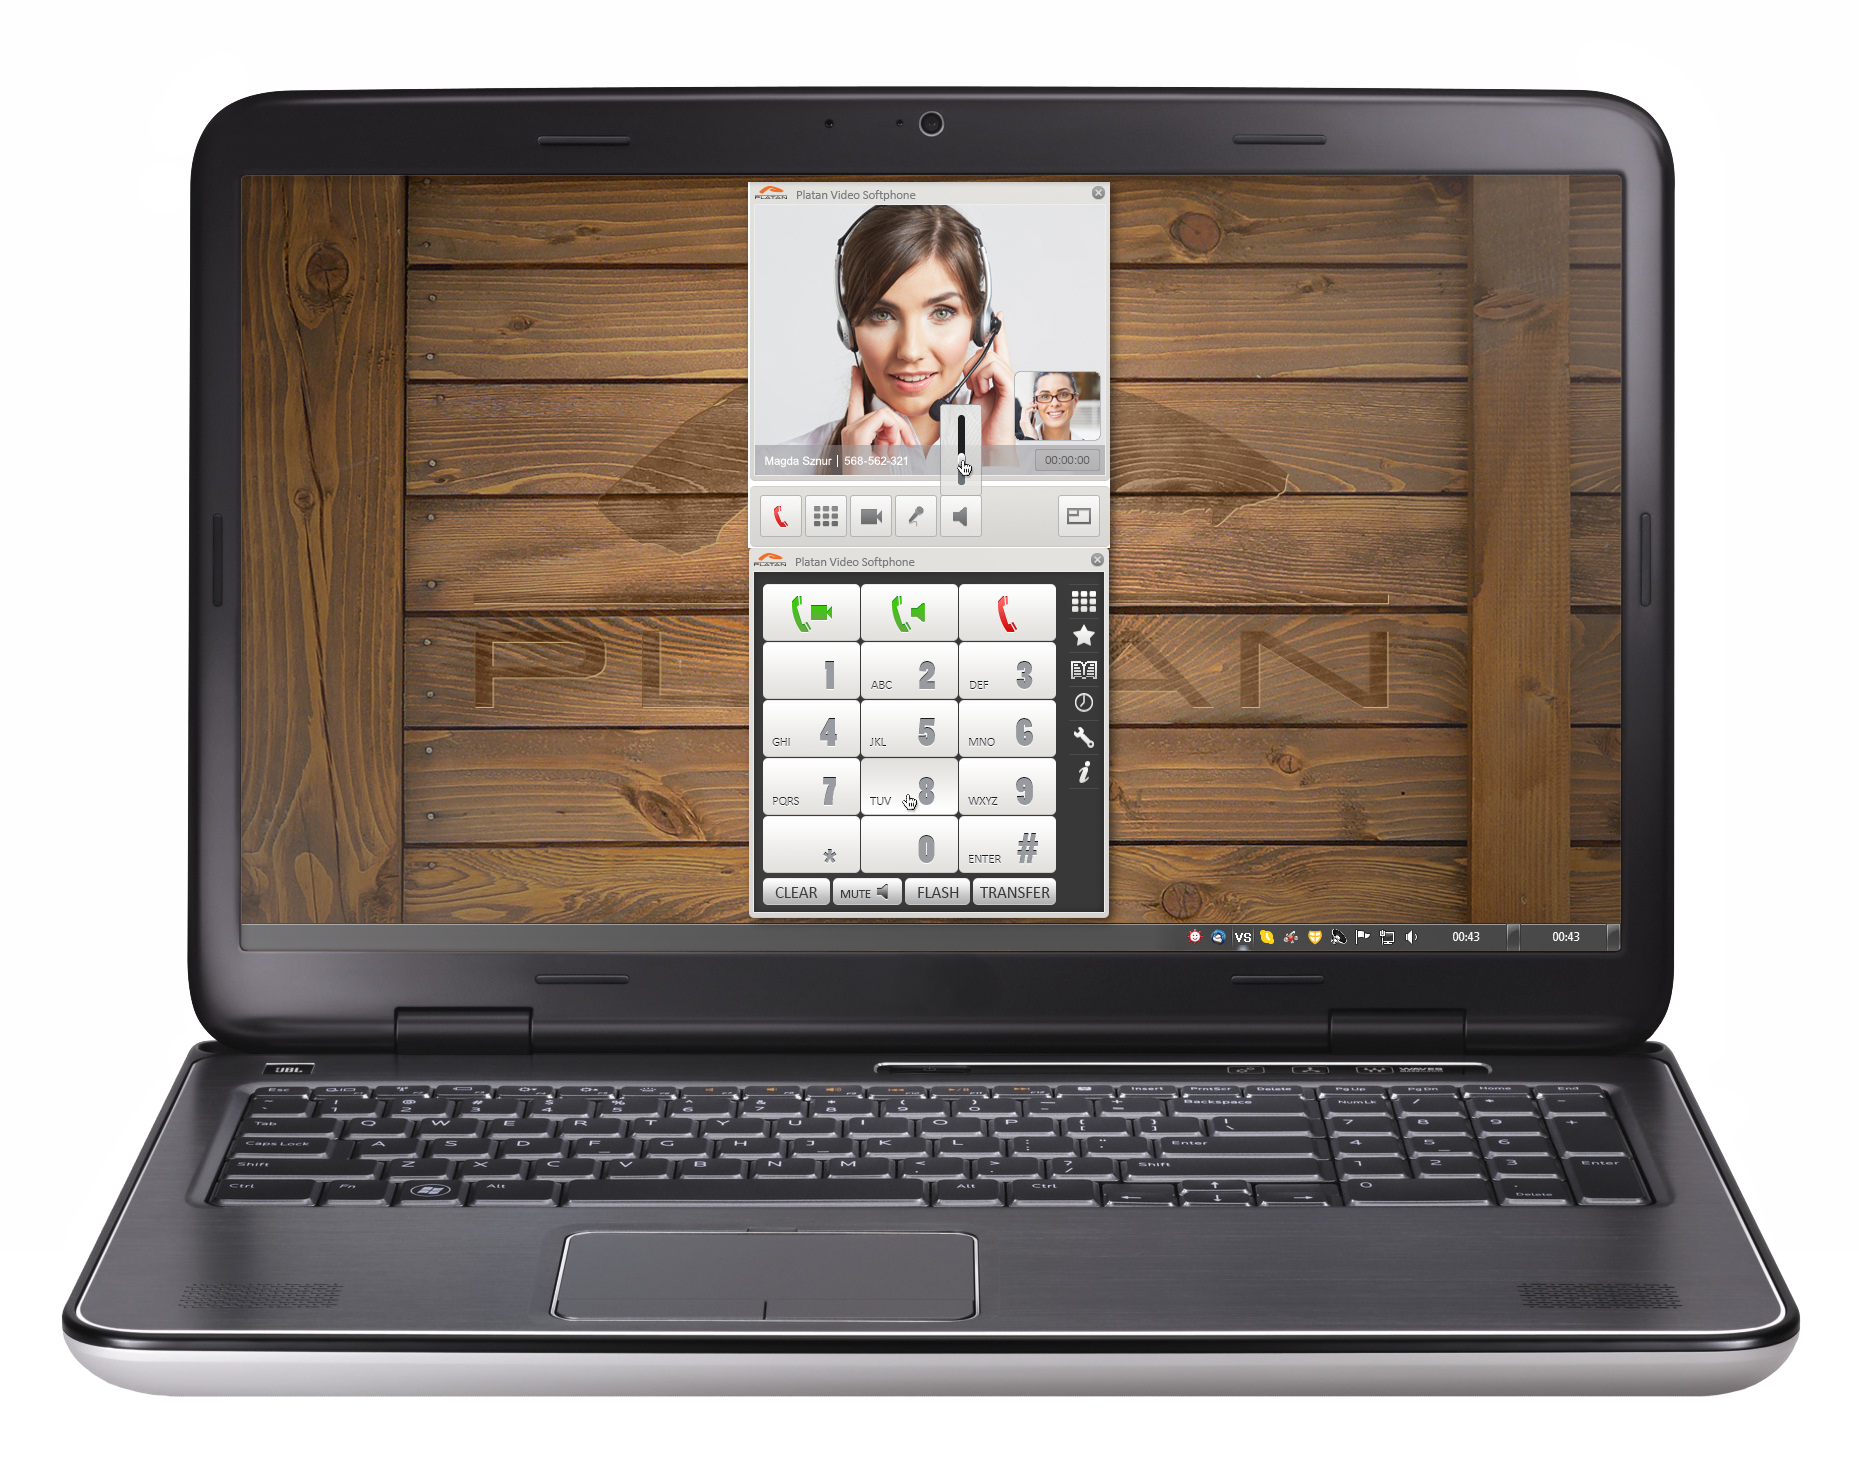 Platan Video Softphone - application to support video calls